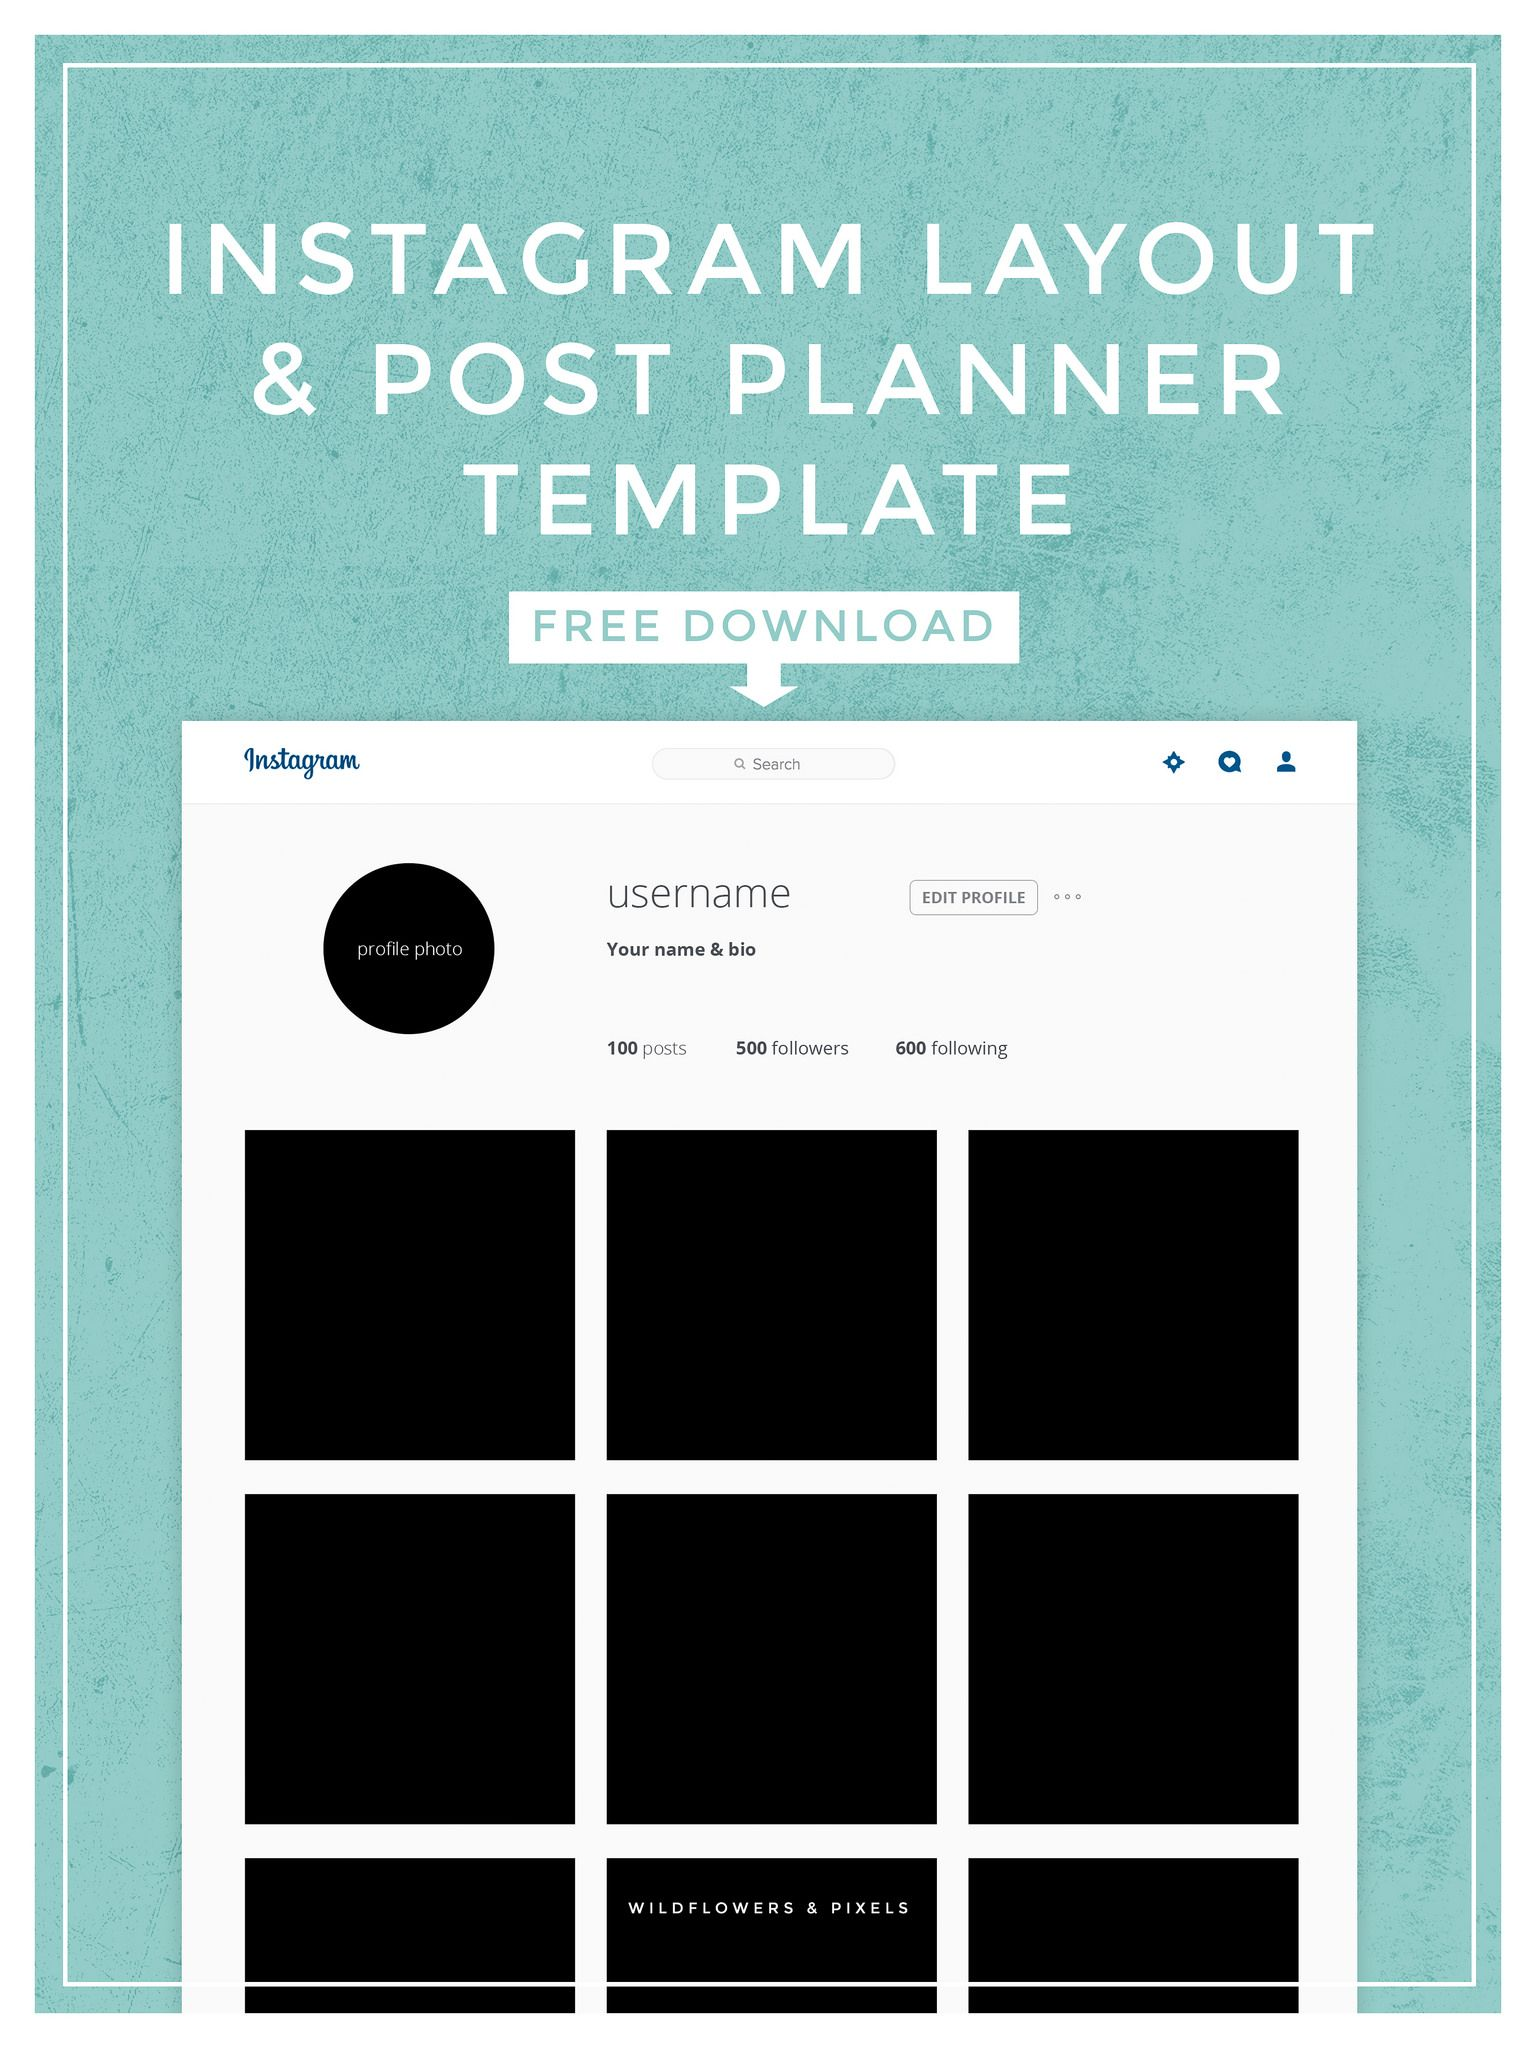 instagram layout post planner template free psd download social media marketing. Black Bedroom Furniture Sets. Home Design Ideas